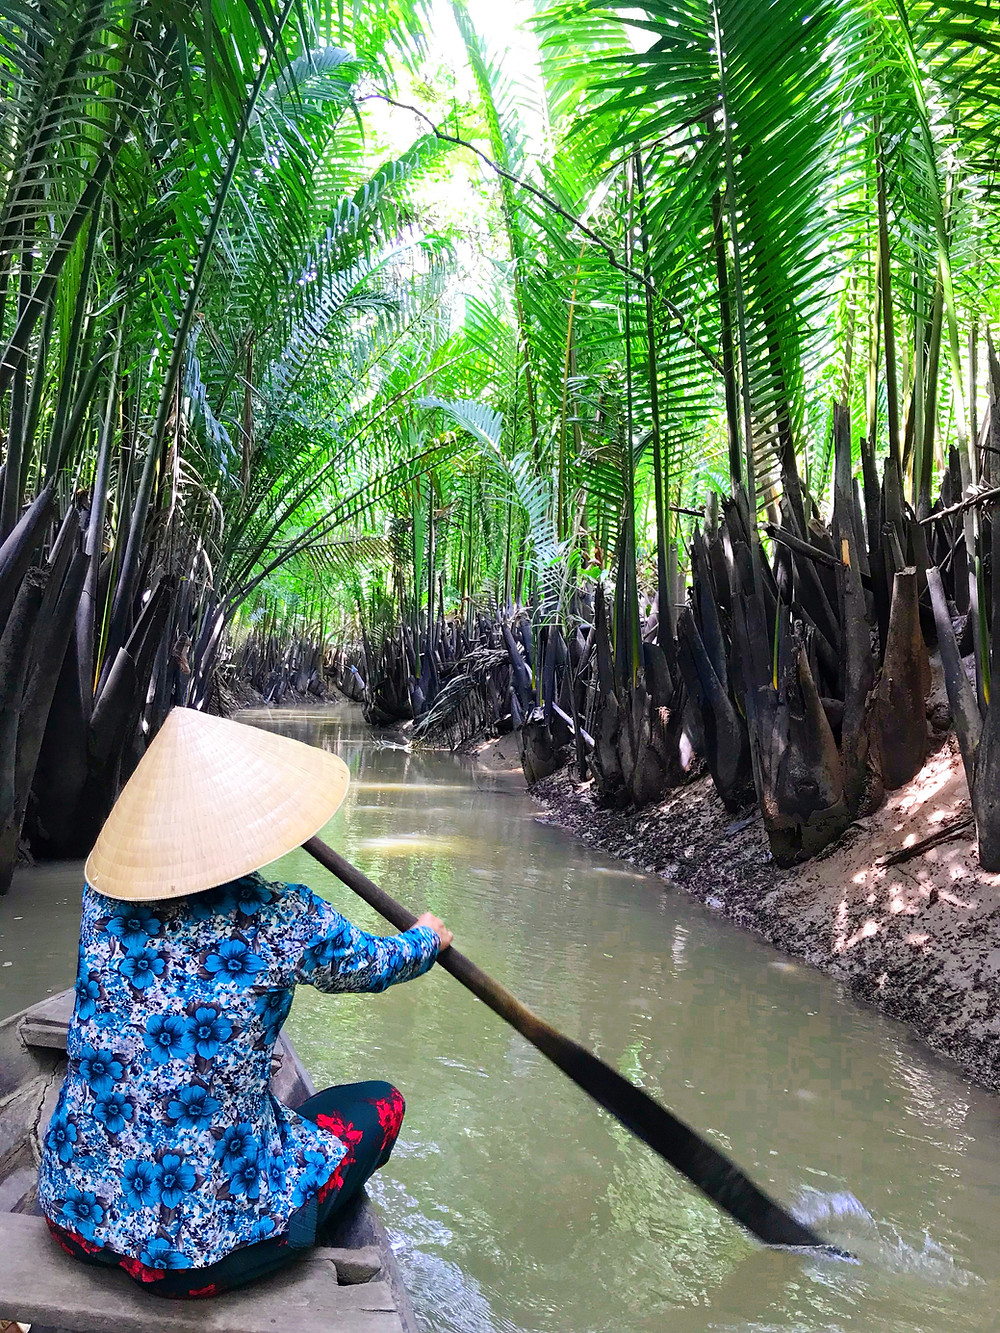 Floating through the canals of the Mekong Delta